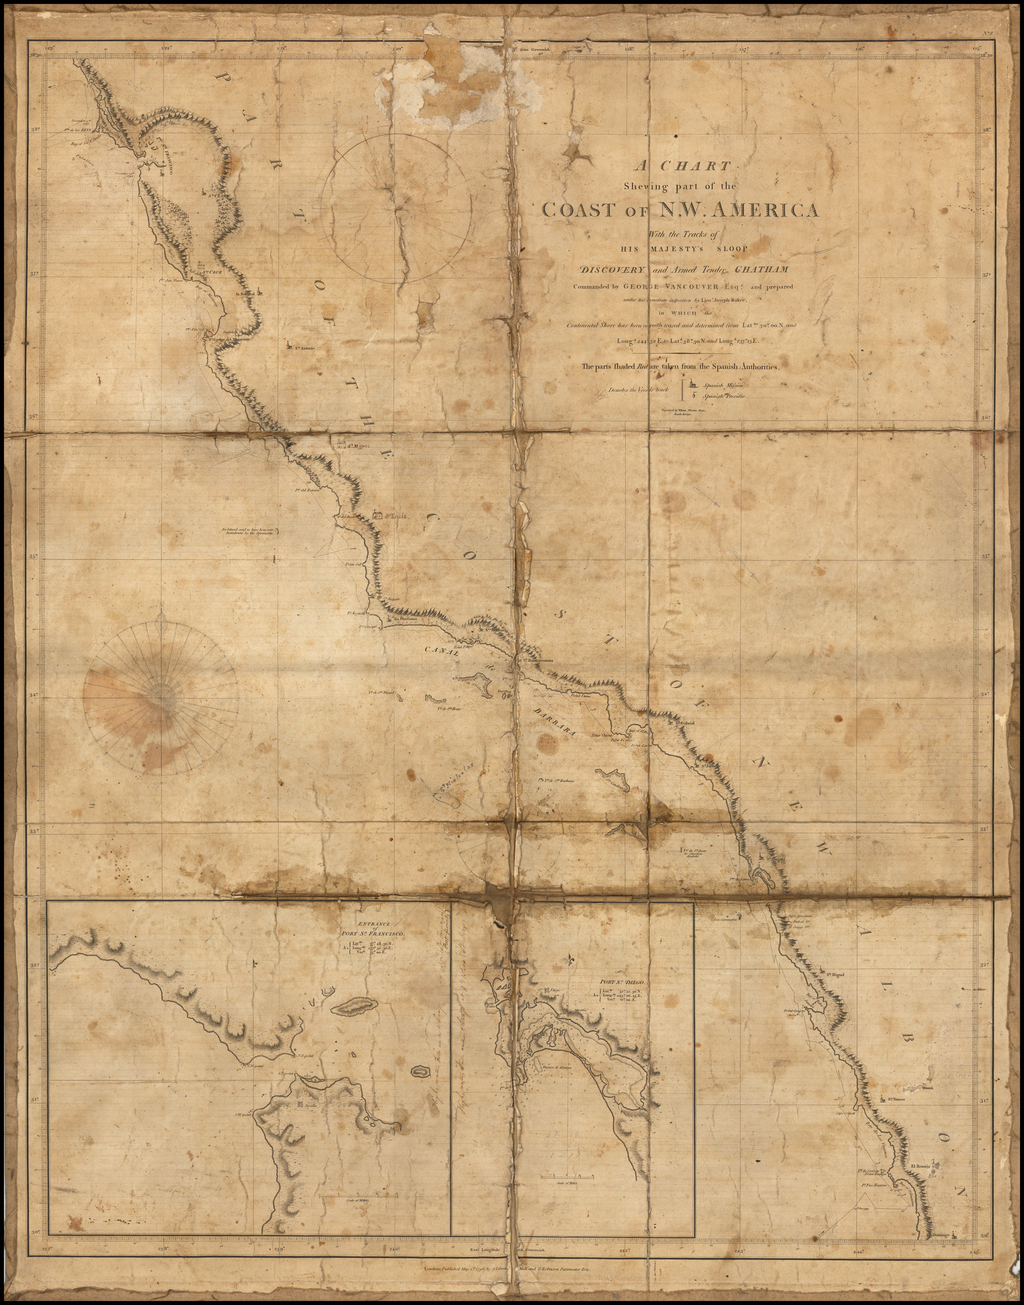 (Used During The California Gold Rush)  A Chart Shewing Part of the Coast of N.W. America, with the Tracks of His Majesty's Sloop Discovery and Armed Tender Chatham Companded by George Vancouver Esqr . . . [San Francisco to Ensenada, ec.] (extensive annotat By Capt. George Vancouver